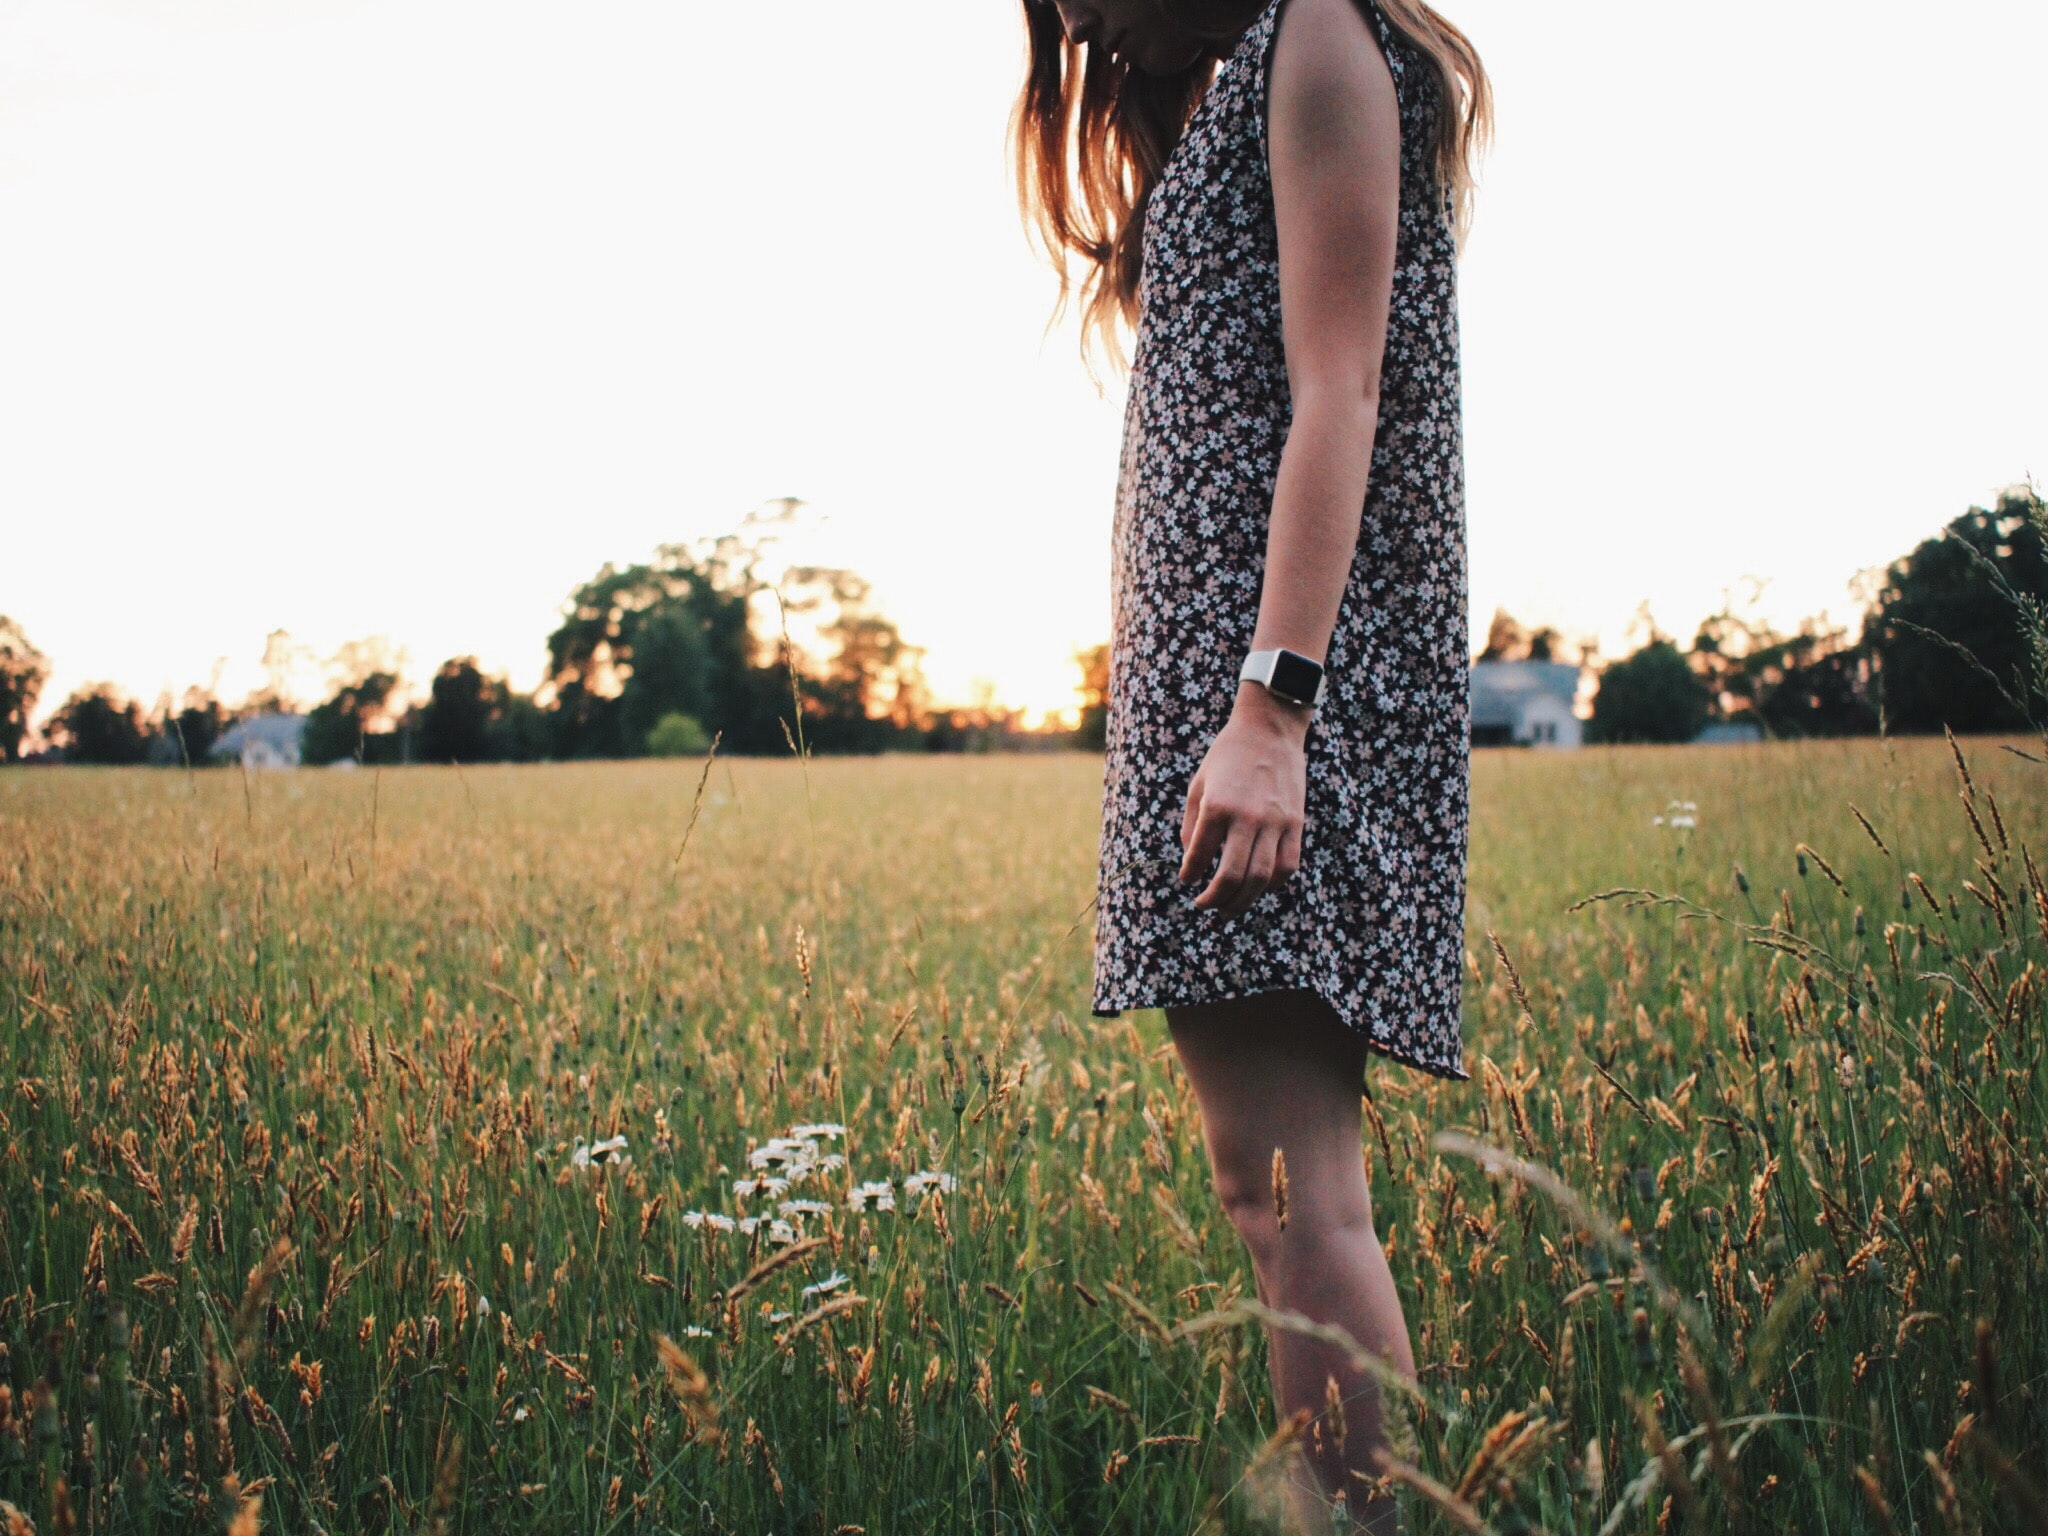 woman in black and white sleeveless dress on green grass field